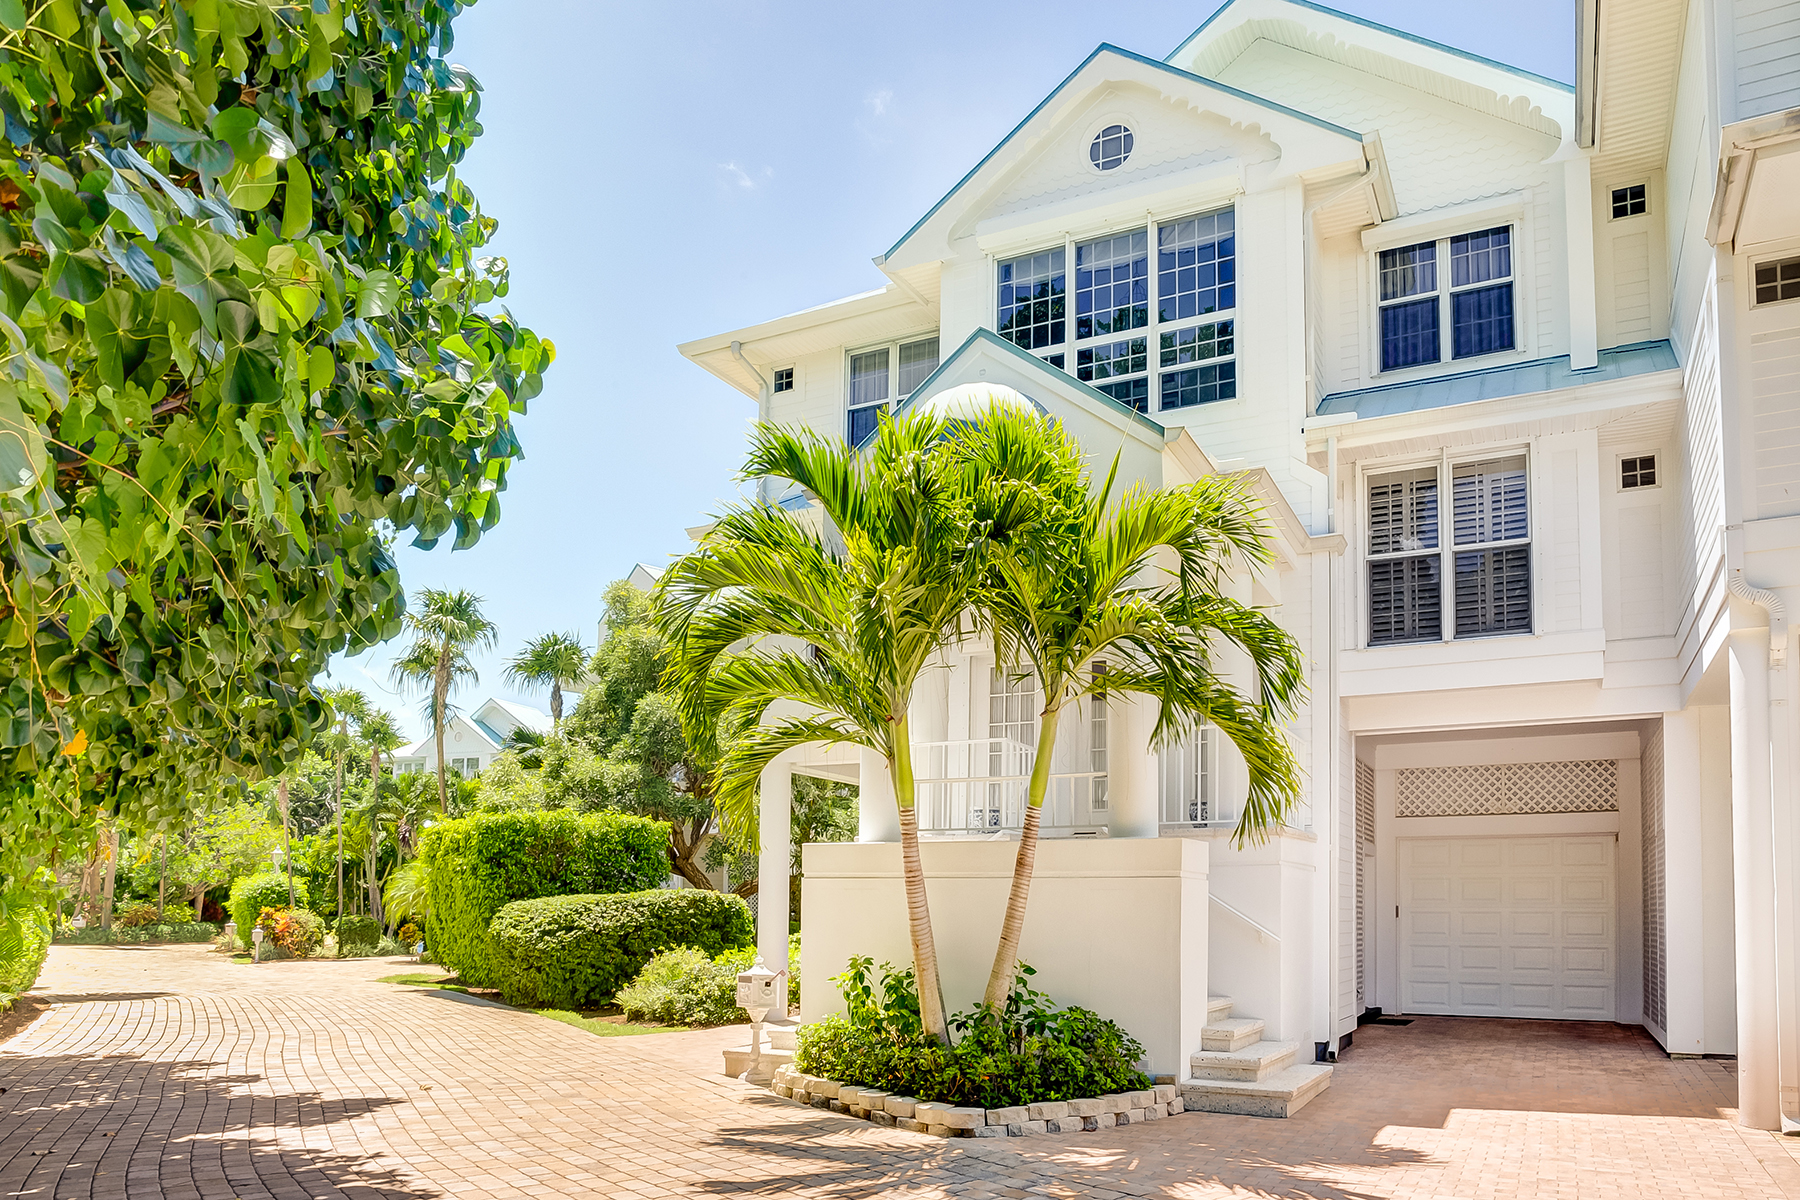 Additional photo for property listing at 411 Bella Vista Way E, Sanibel, FL 33957 411  Bella Vista Way  E,  Sanibel, Florida 33957 United States